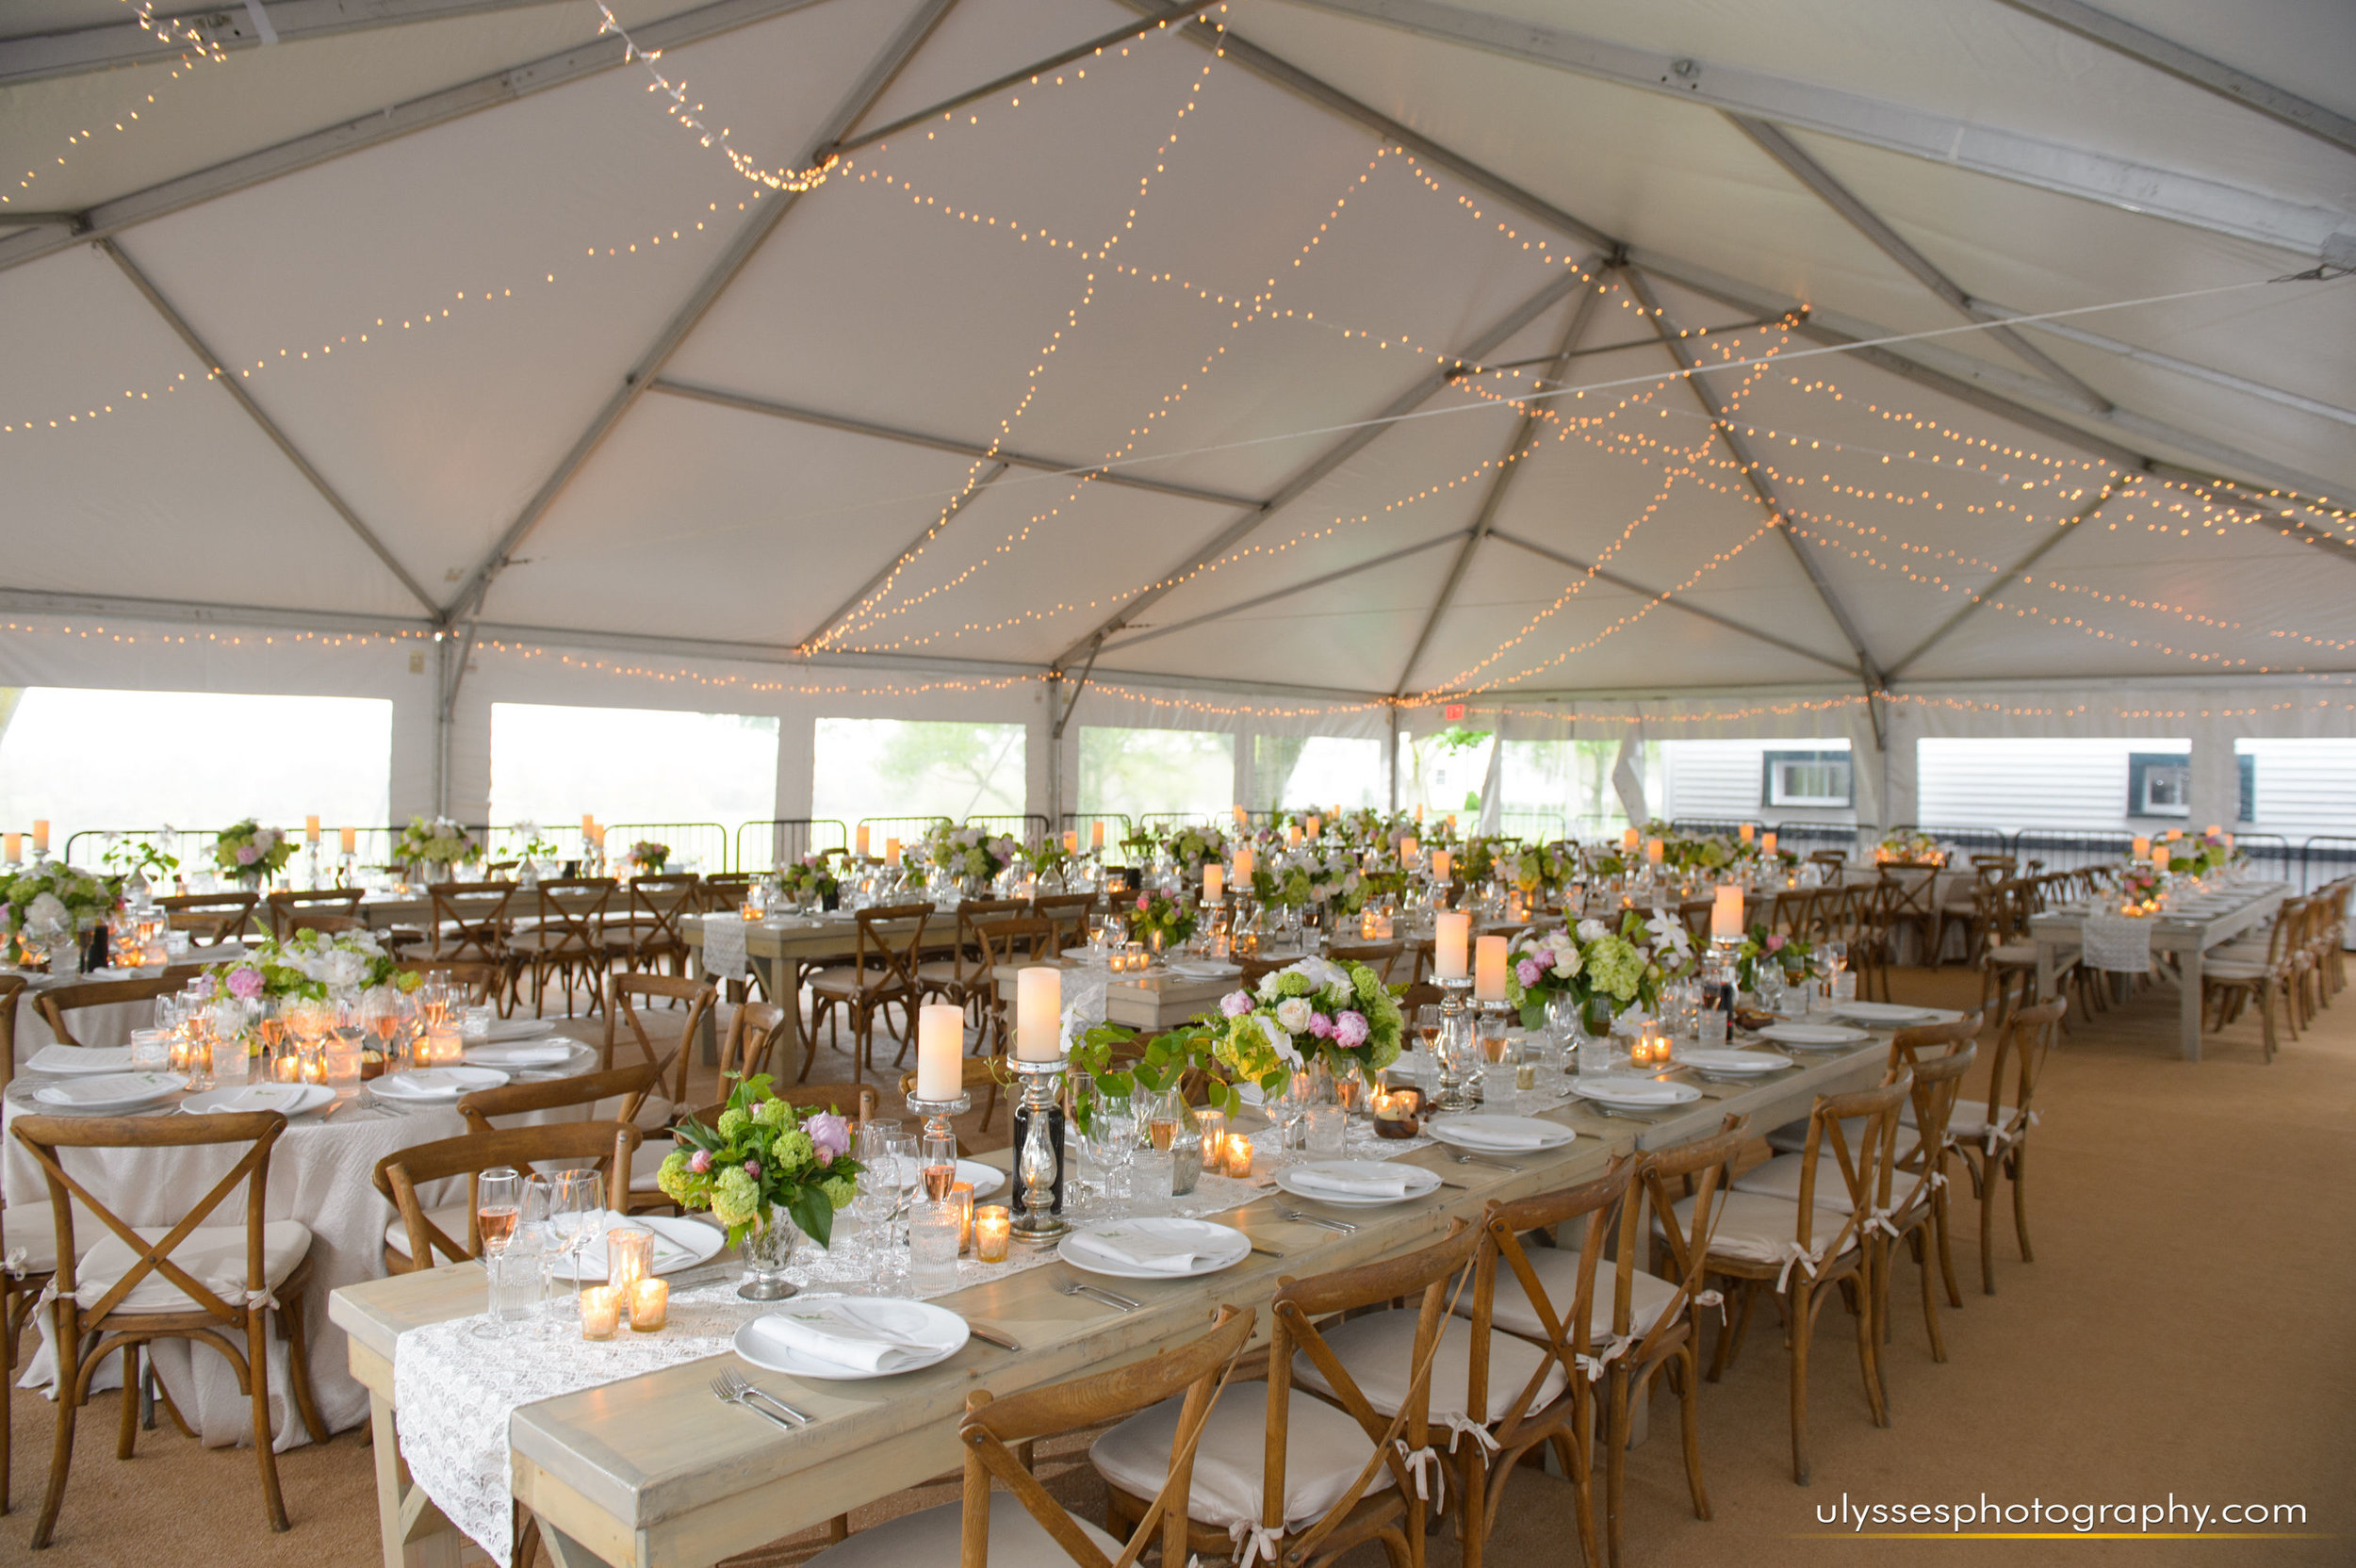 26 At Home Wedding Tent Reception Farmhouse Table Crossback Chairs Lace Runners.jpg